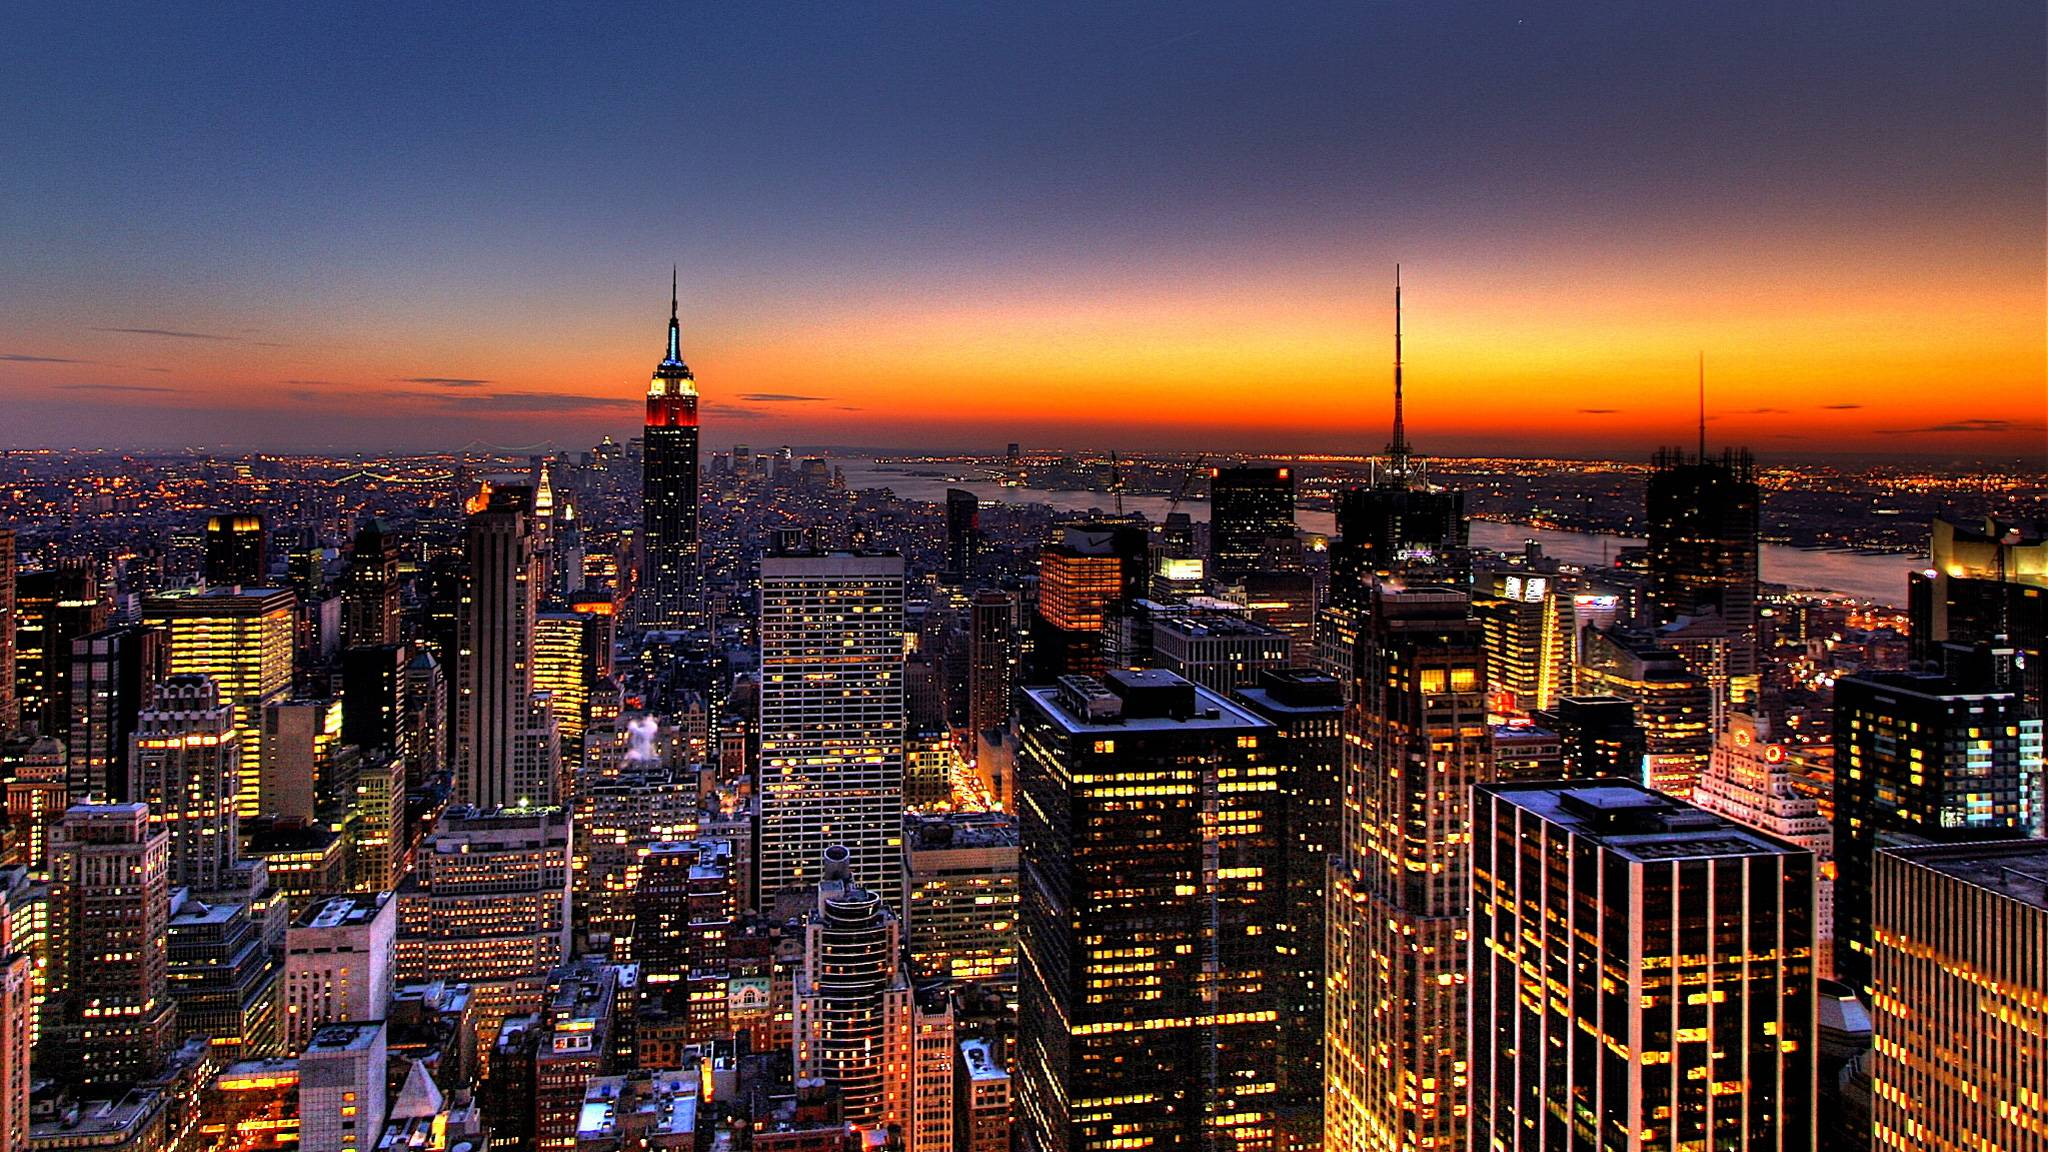 New York City At Night Wallpapers